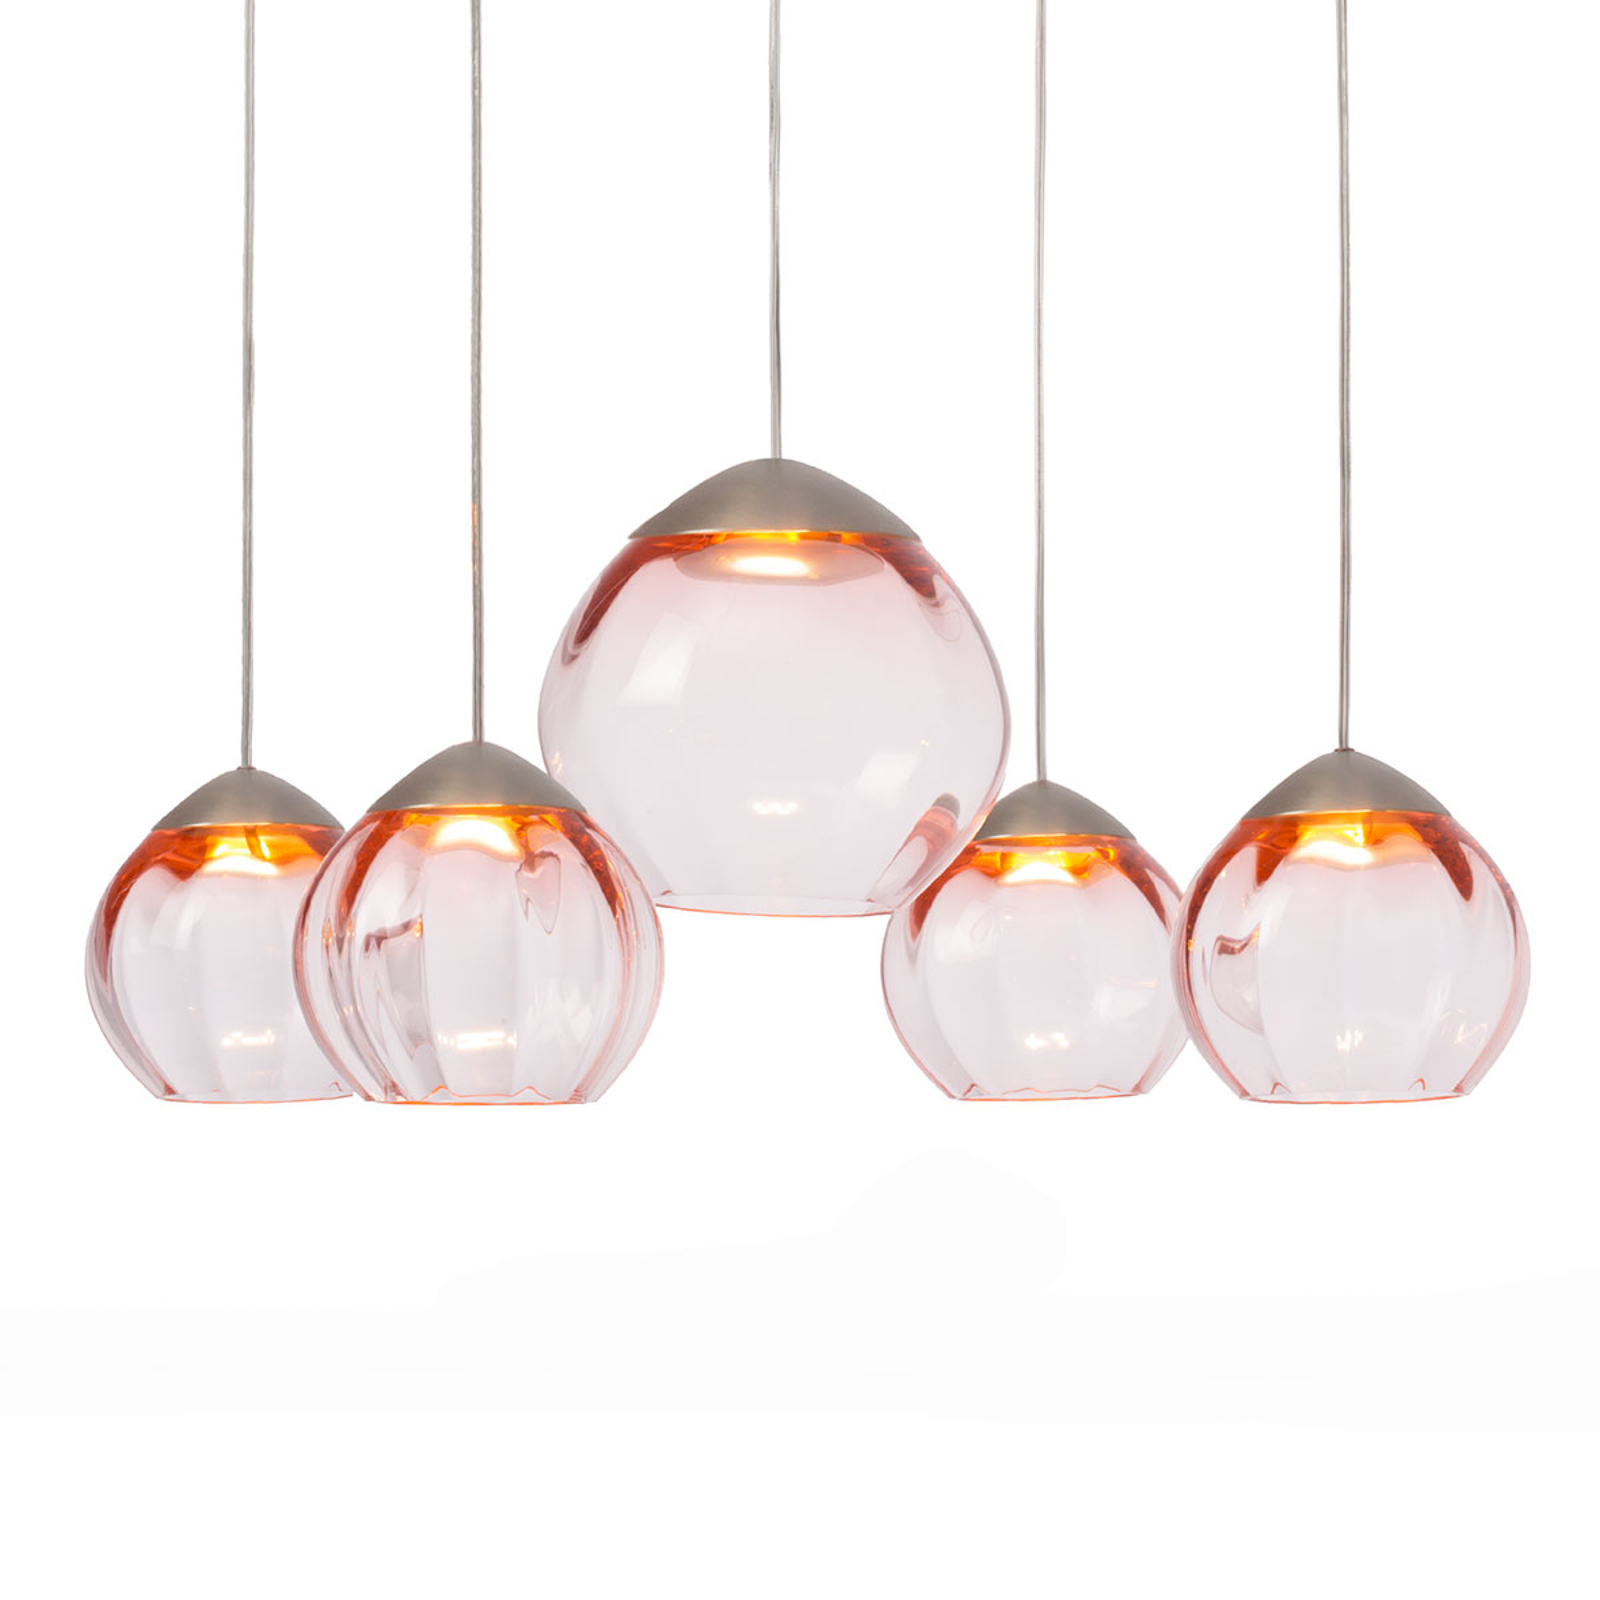 Suspension LED Soft ronde 5 lampes, abat-jour rose